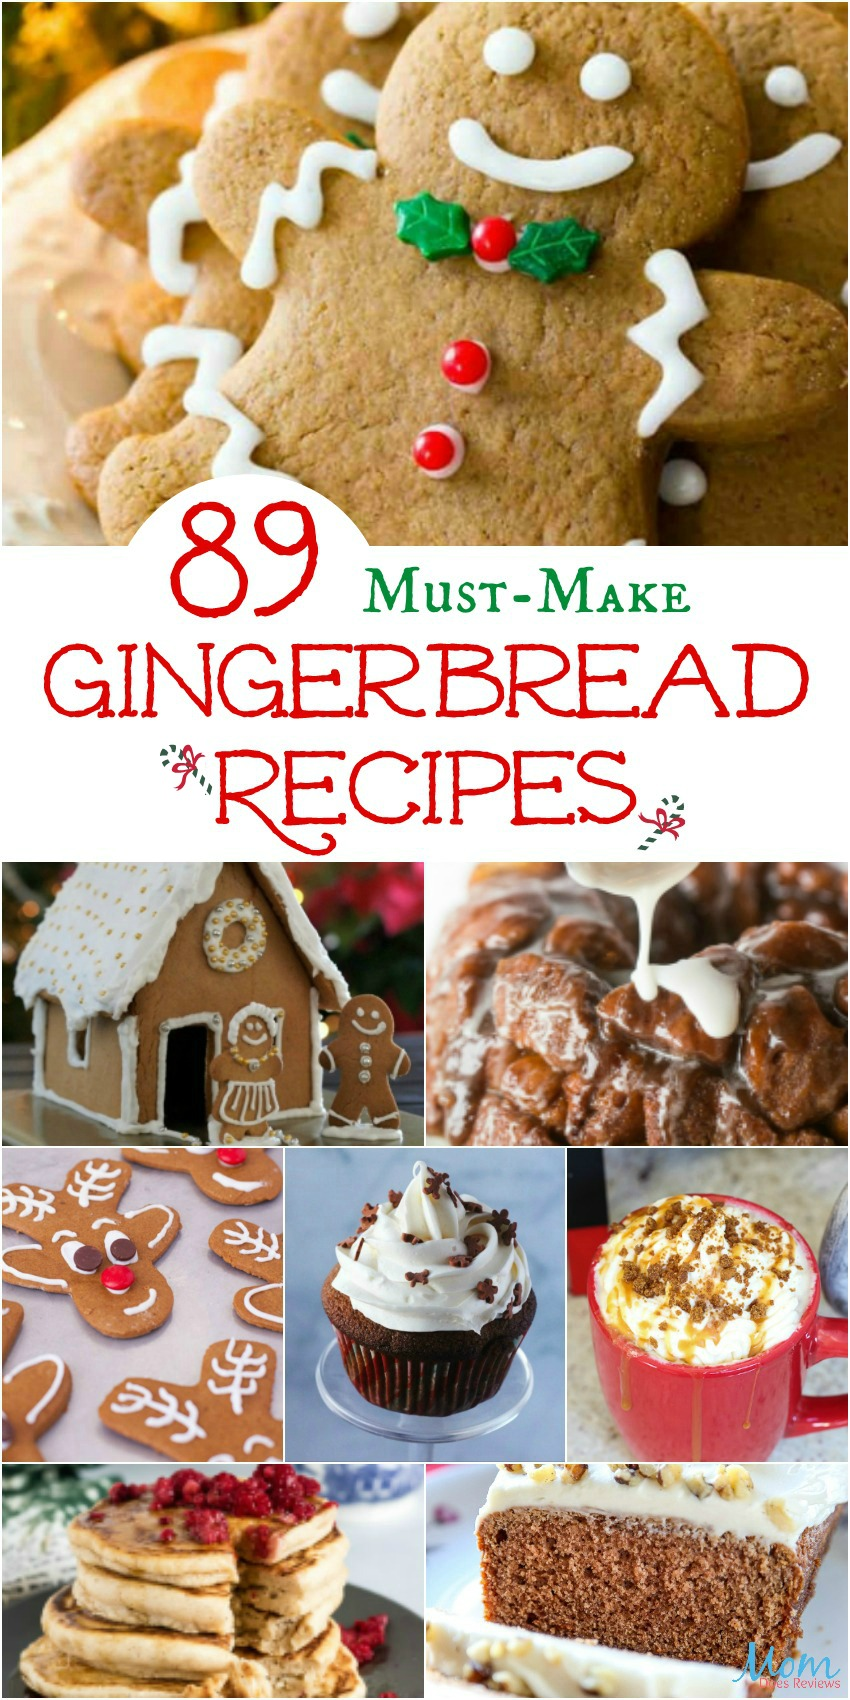 89 Must-Make Gingerbread Recipes Your Family Will Love #recipes #food #desserts #christmas #getinmybelly